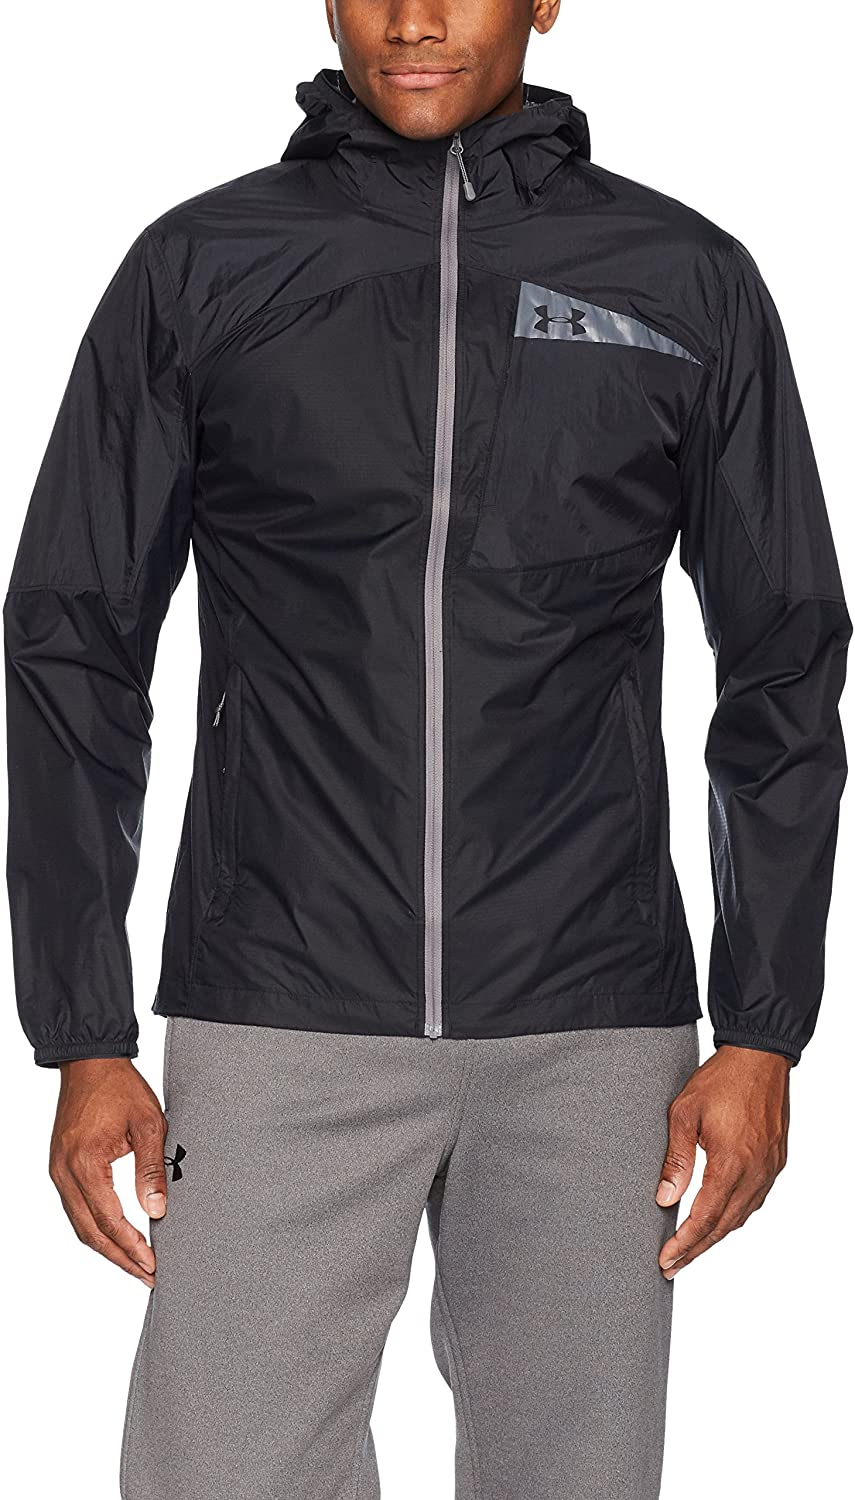 Under Armour Outerwear Men's UA Scrambler Hybrid Jacket, Black (001)/Graphite, X-Large